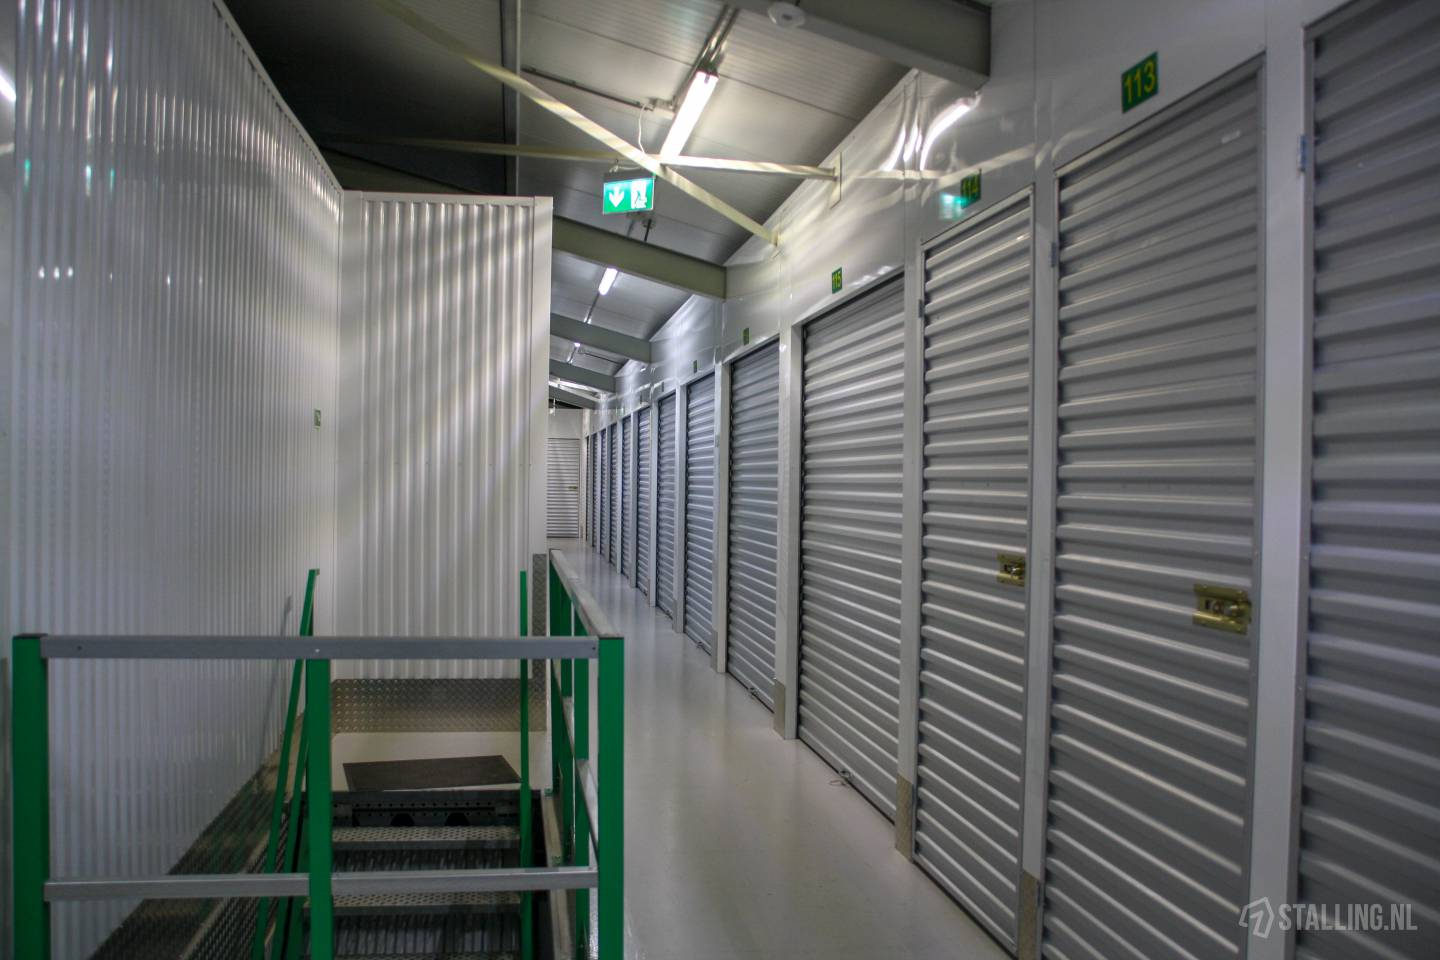 specker self-storage opslagbox bovenkarspel